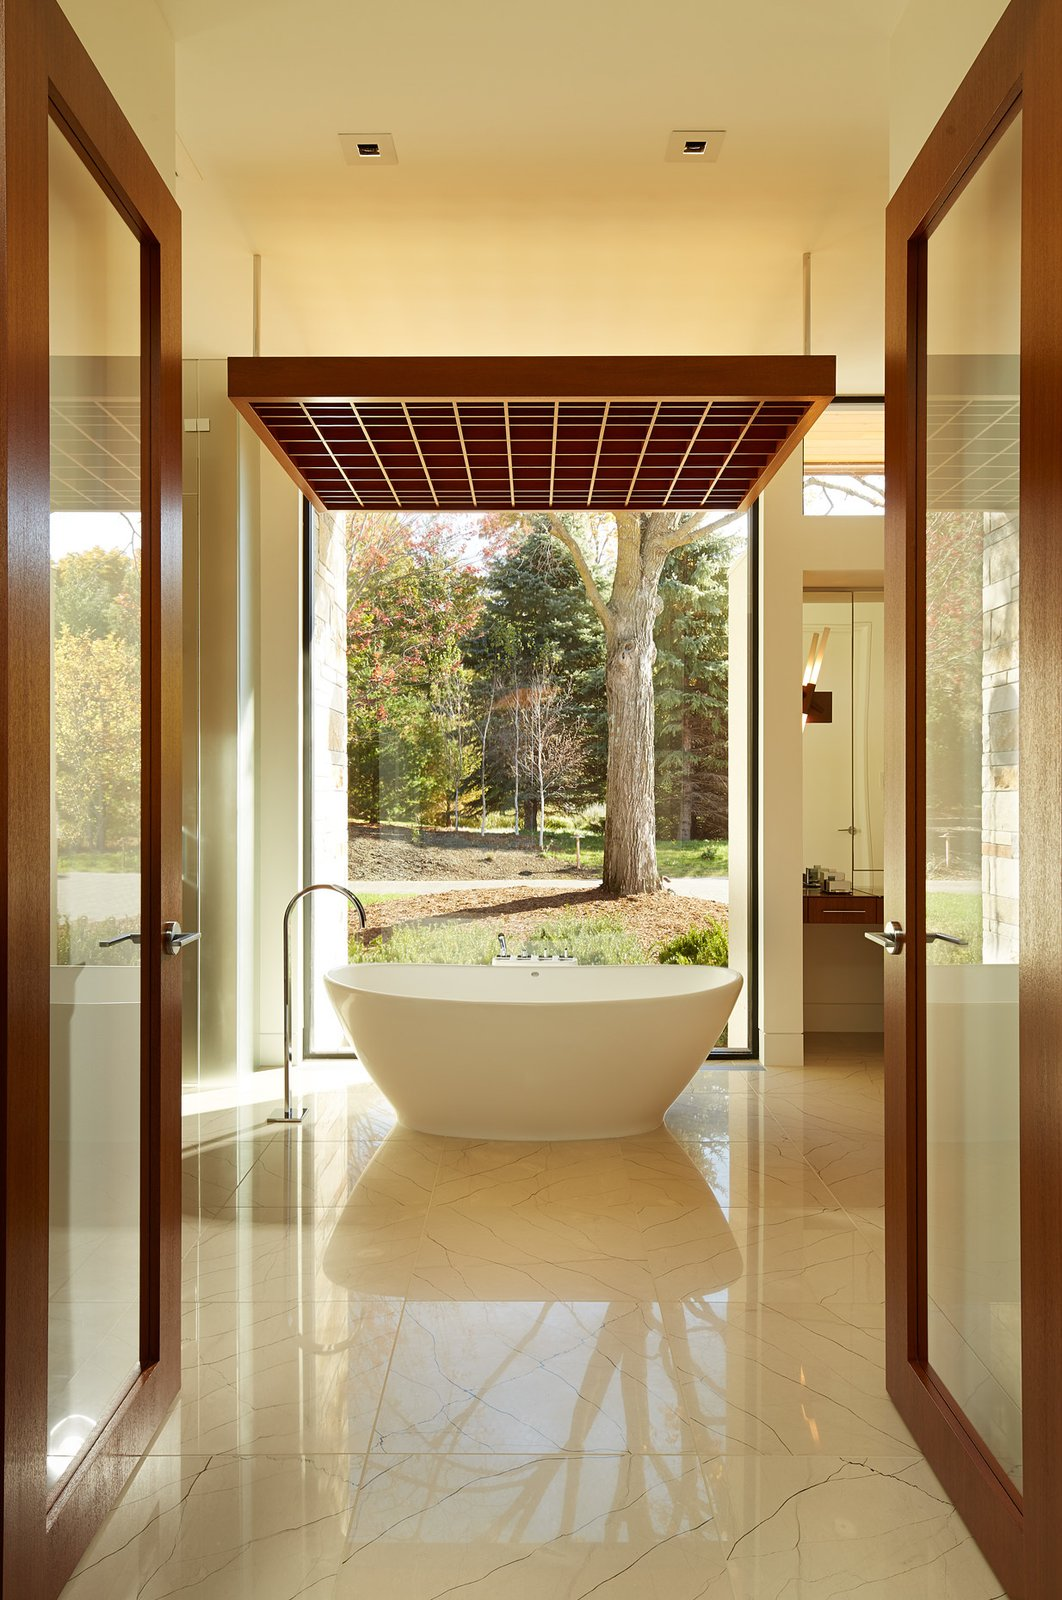 Bath Room, Freestanding Tub, Wood Counter, Ceramic Tile Floor, Recessed Lighting, and Wall Lighting  Shoreline Residence by PKA Architecture